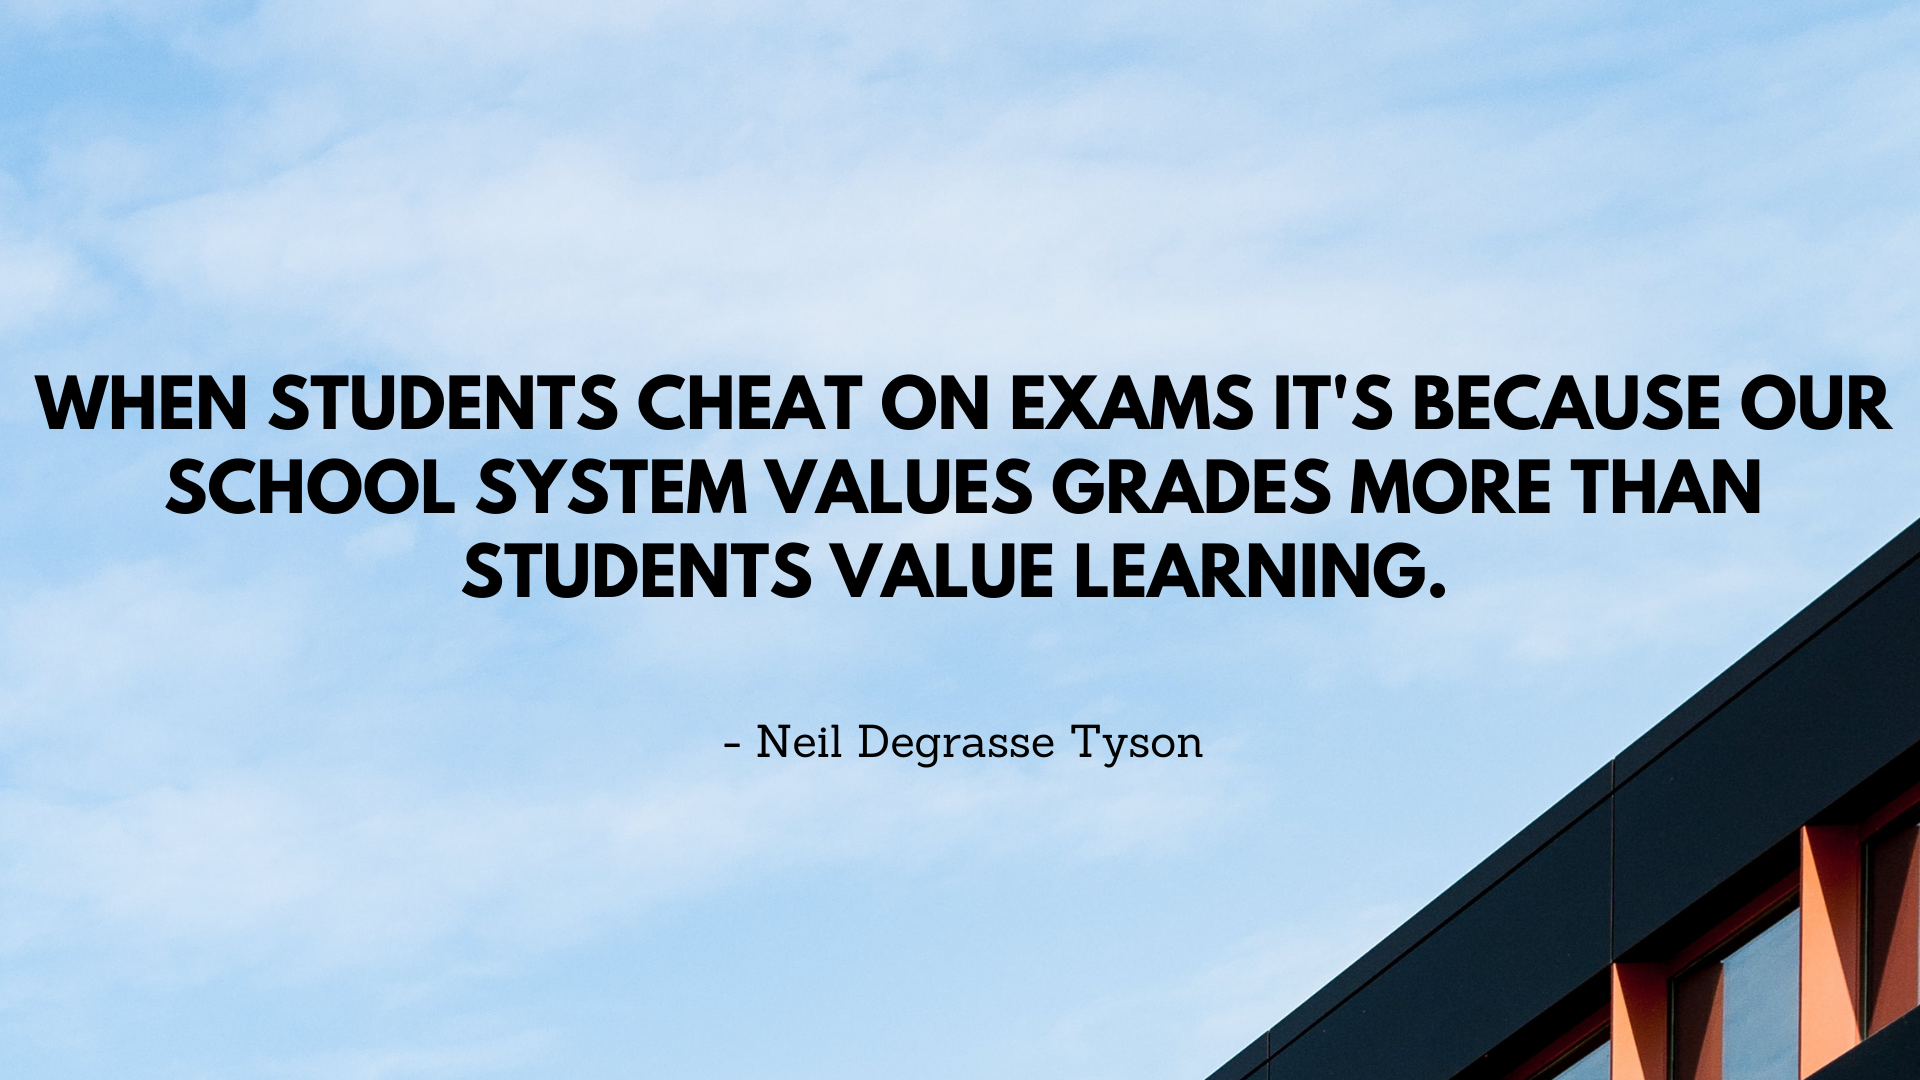 When Students cheat on exams it's because our School System values grades more than Students value learning. – Neil Degrasse Tyson [1920×1080]